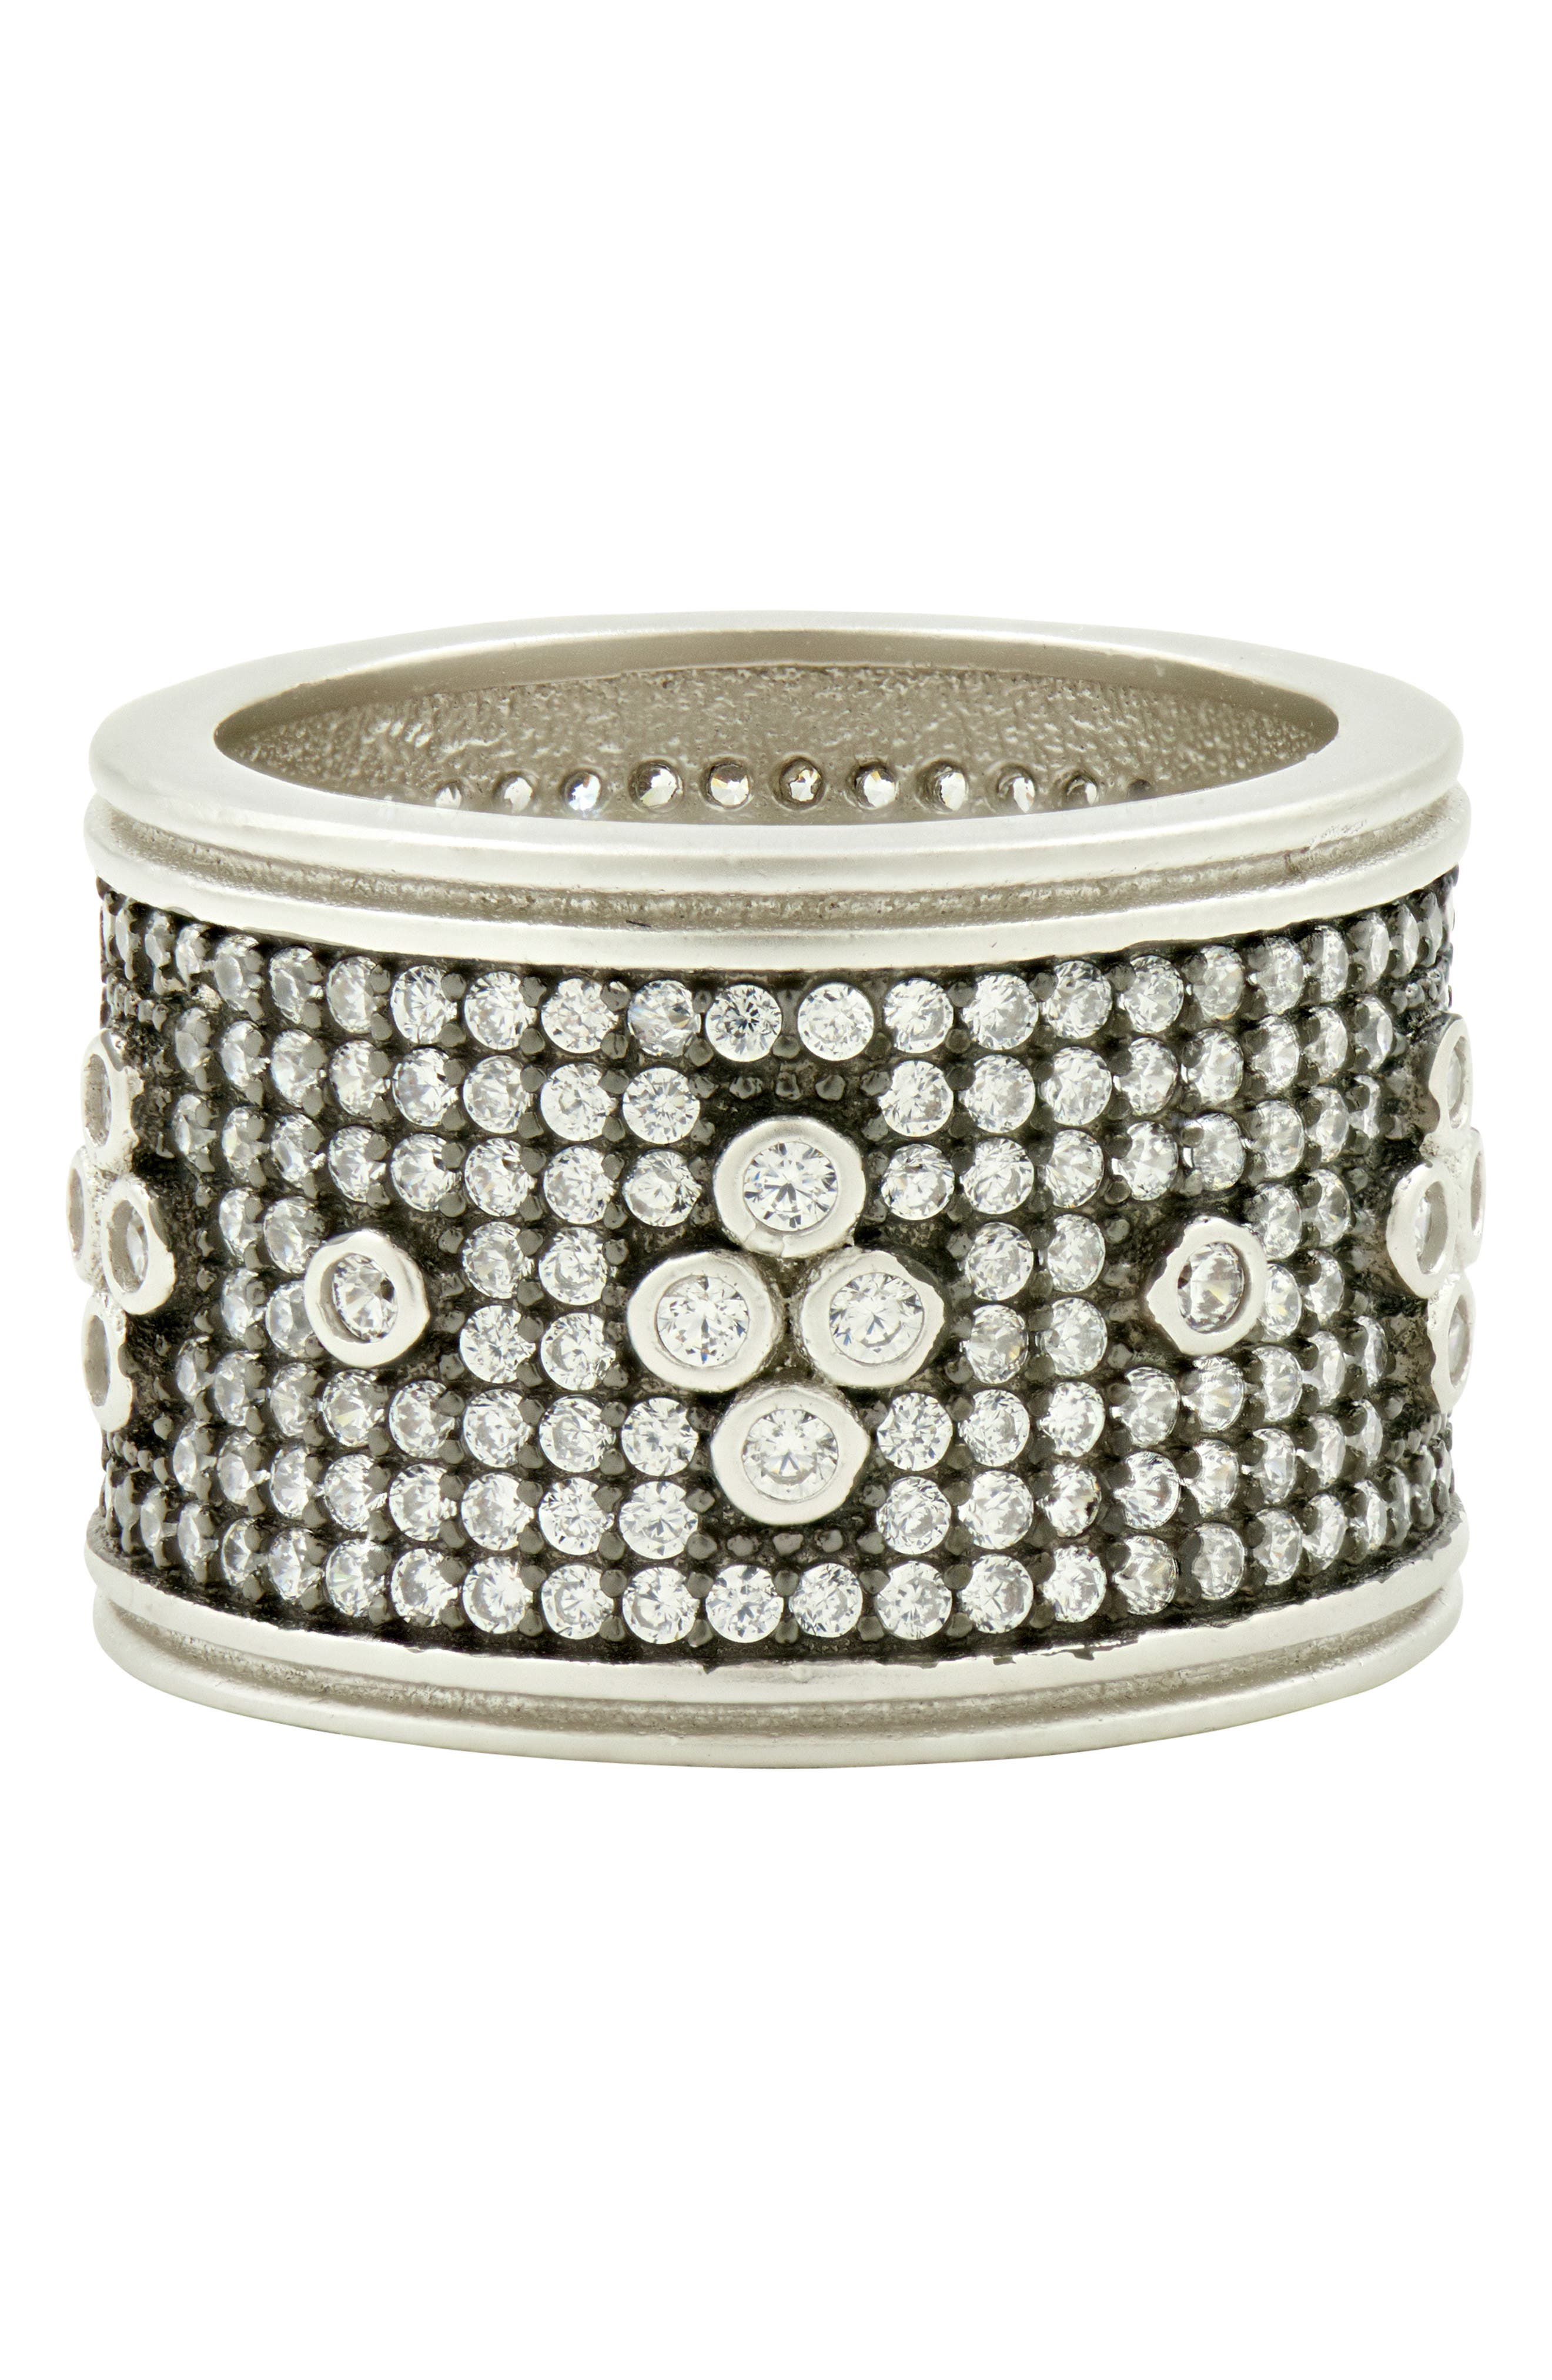 Clover Wide Band Ring,                         Main,                         color, BLACK/ WHITE/ SILVER